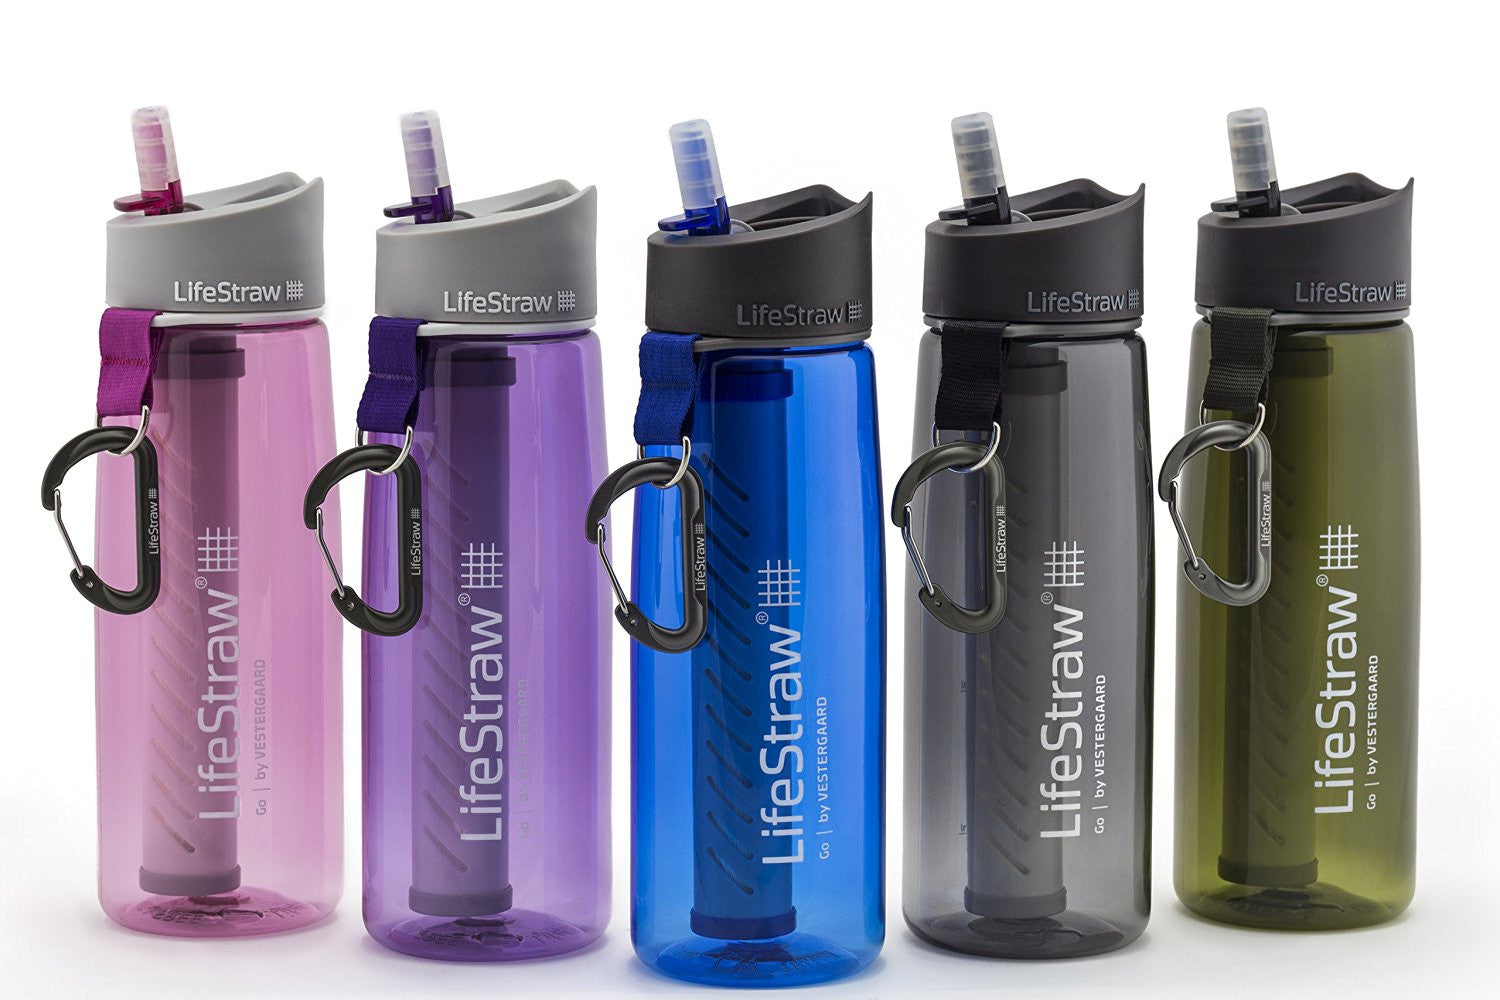 Lifestraw Water Bottle With 2 Stage Filtration Voilet - Ayudh Sports LLP  - 6